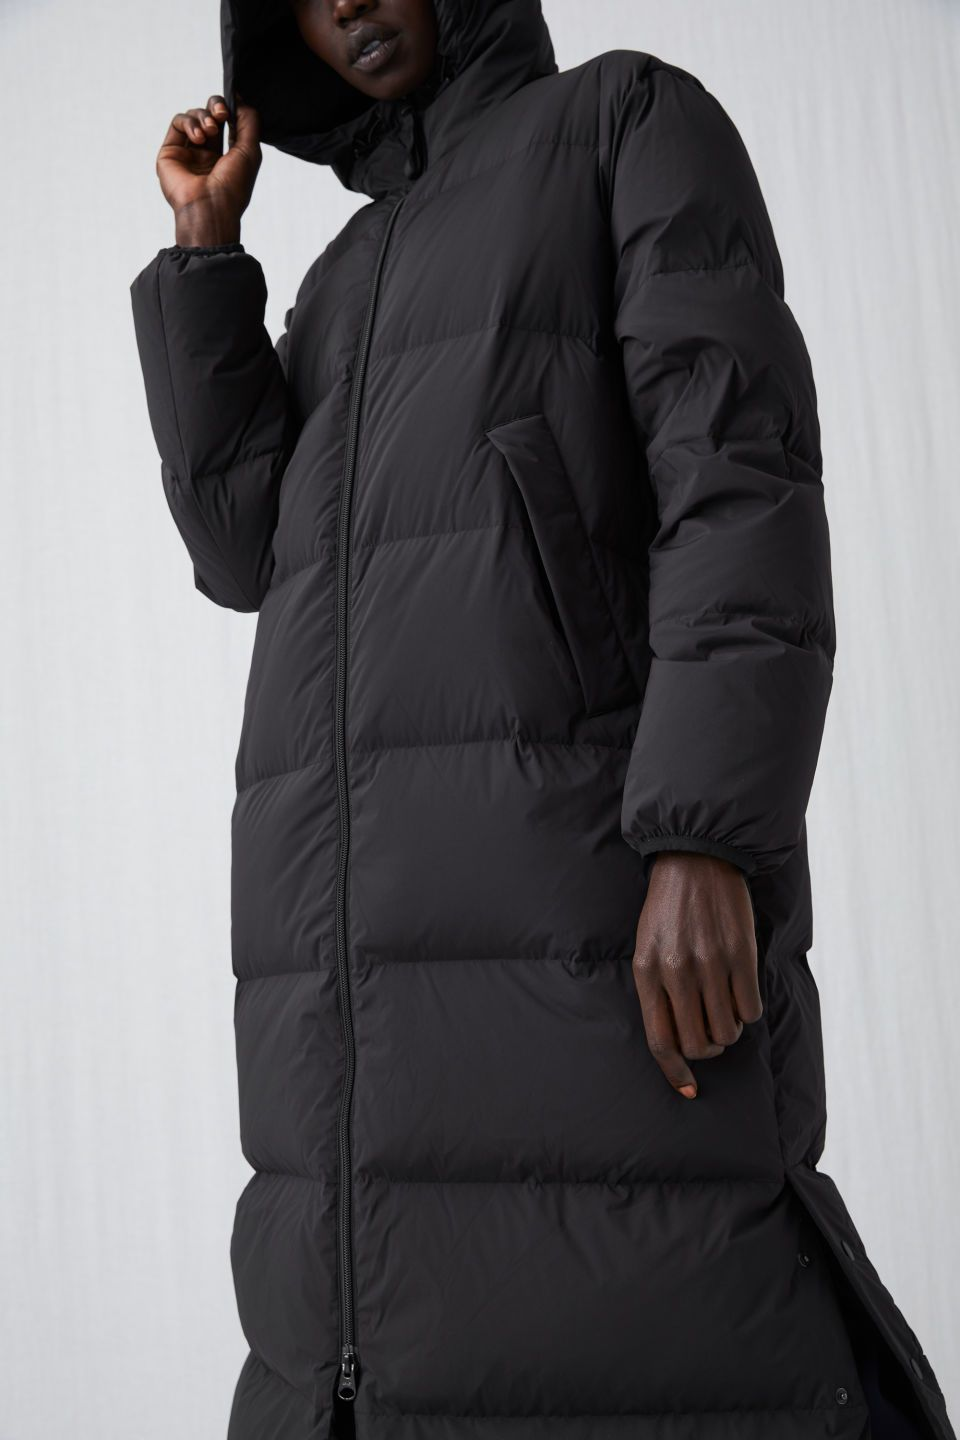 Puffer 2019Down Down JacketsCoats Black Coat in 4R5jLq3A